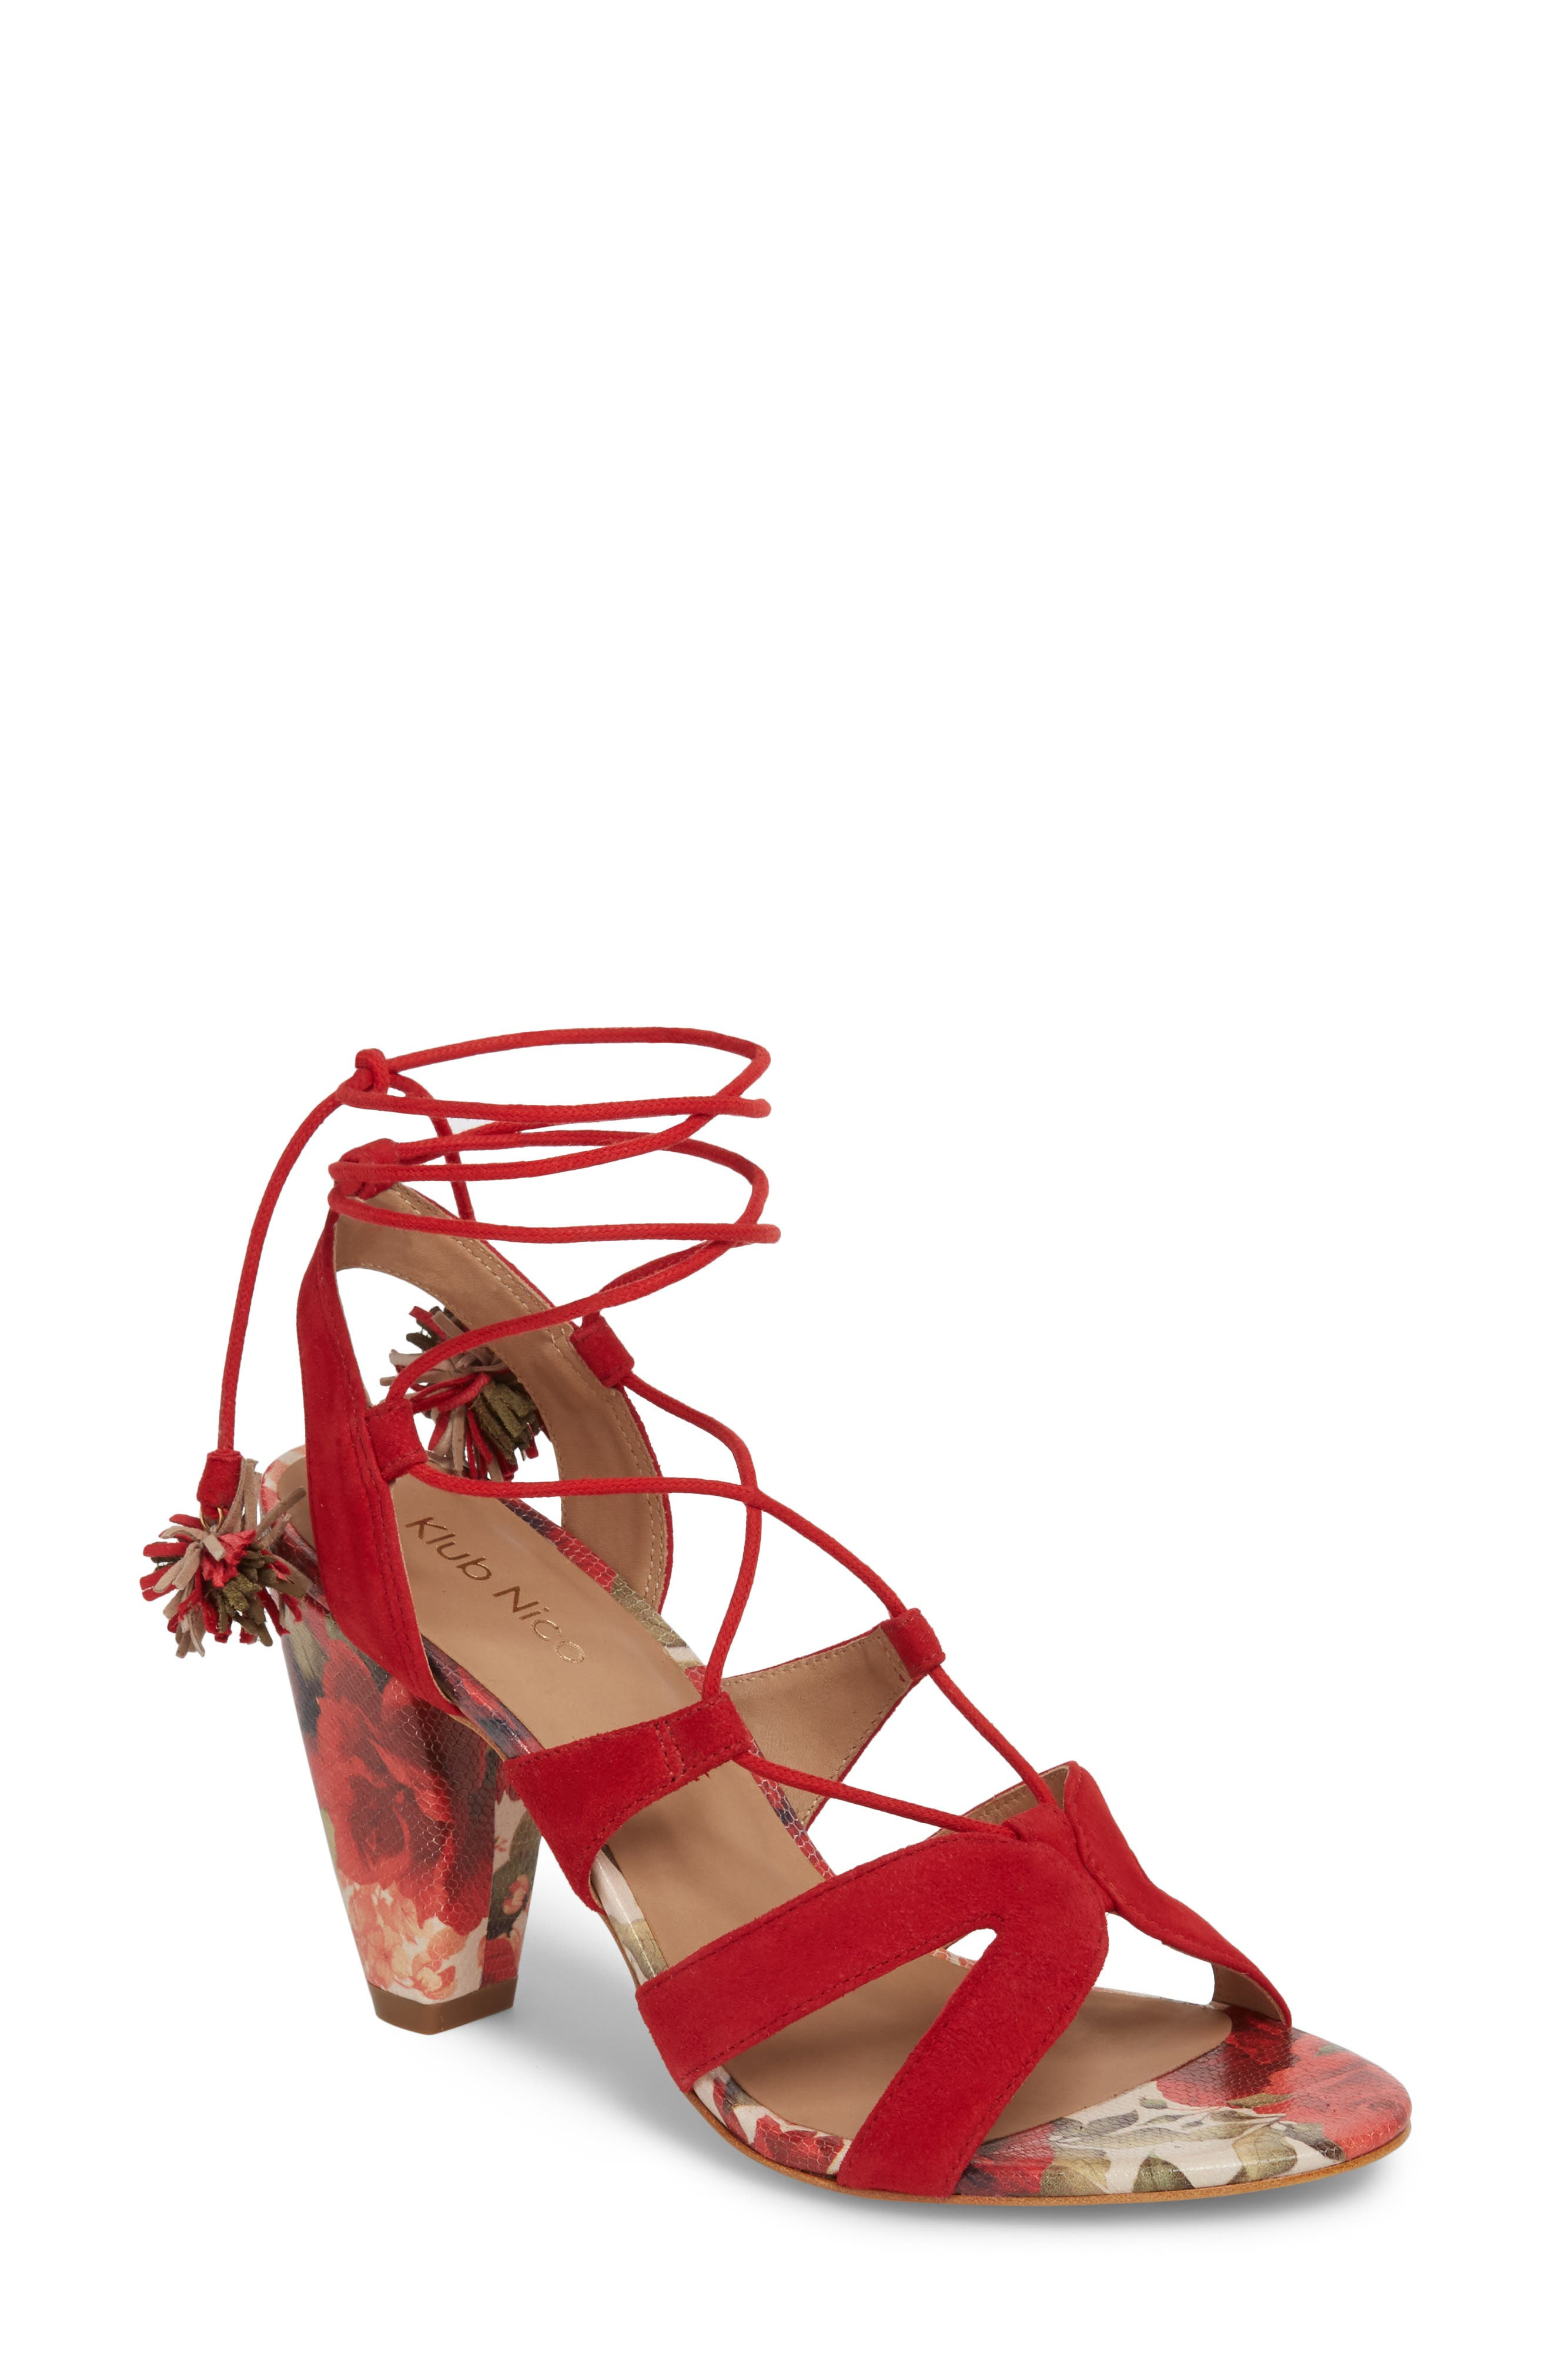 Maxine Sandal,                             Main thumbnail 1, color,                             Red Suede